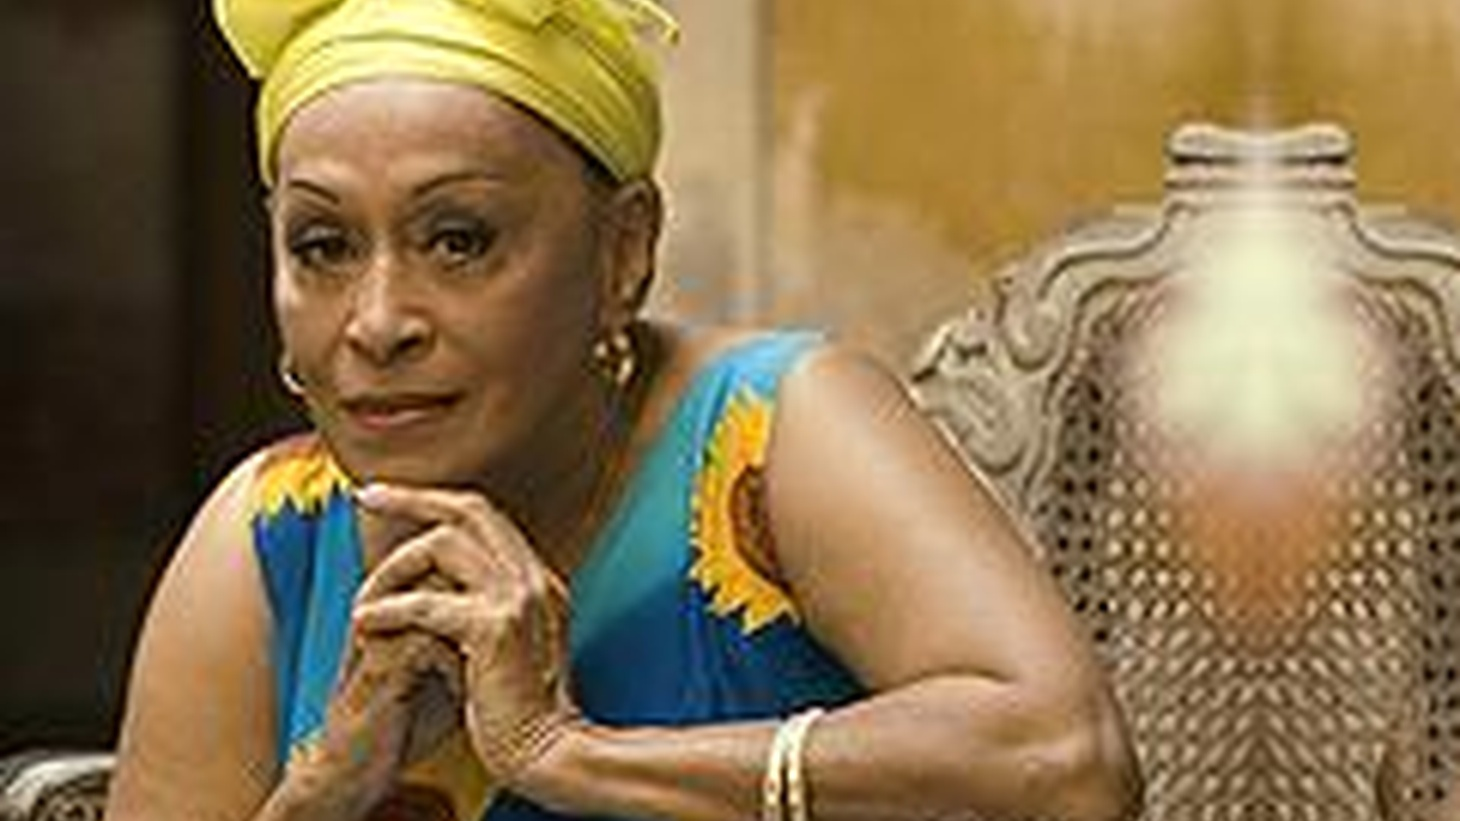 ...from Gracias.   Buena Vista Social Club's leading lady, Omara Portuondo celebrates her sixth decade as a recording artist with her release, Gracias. On the disc, she's invited some of her favorite artists..